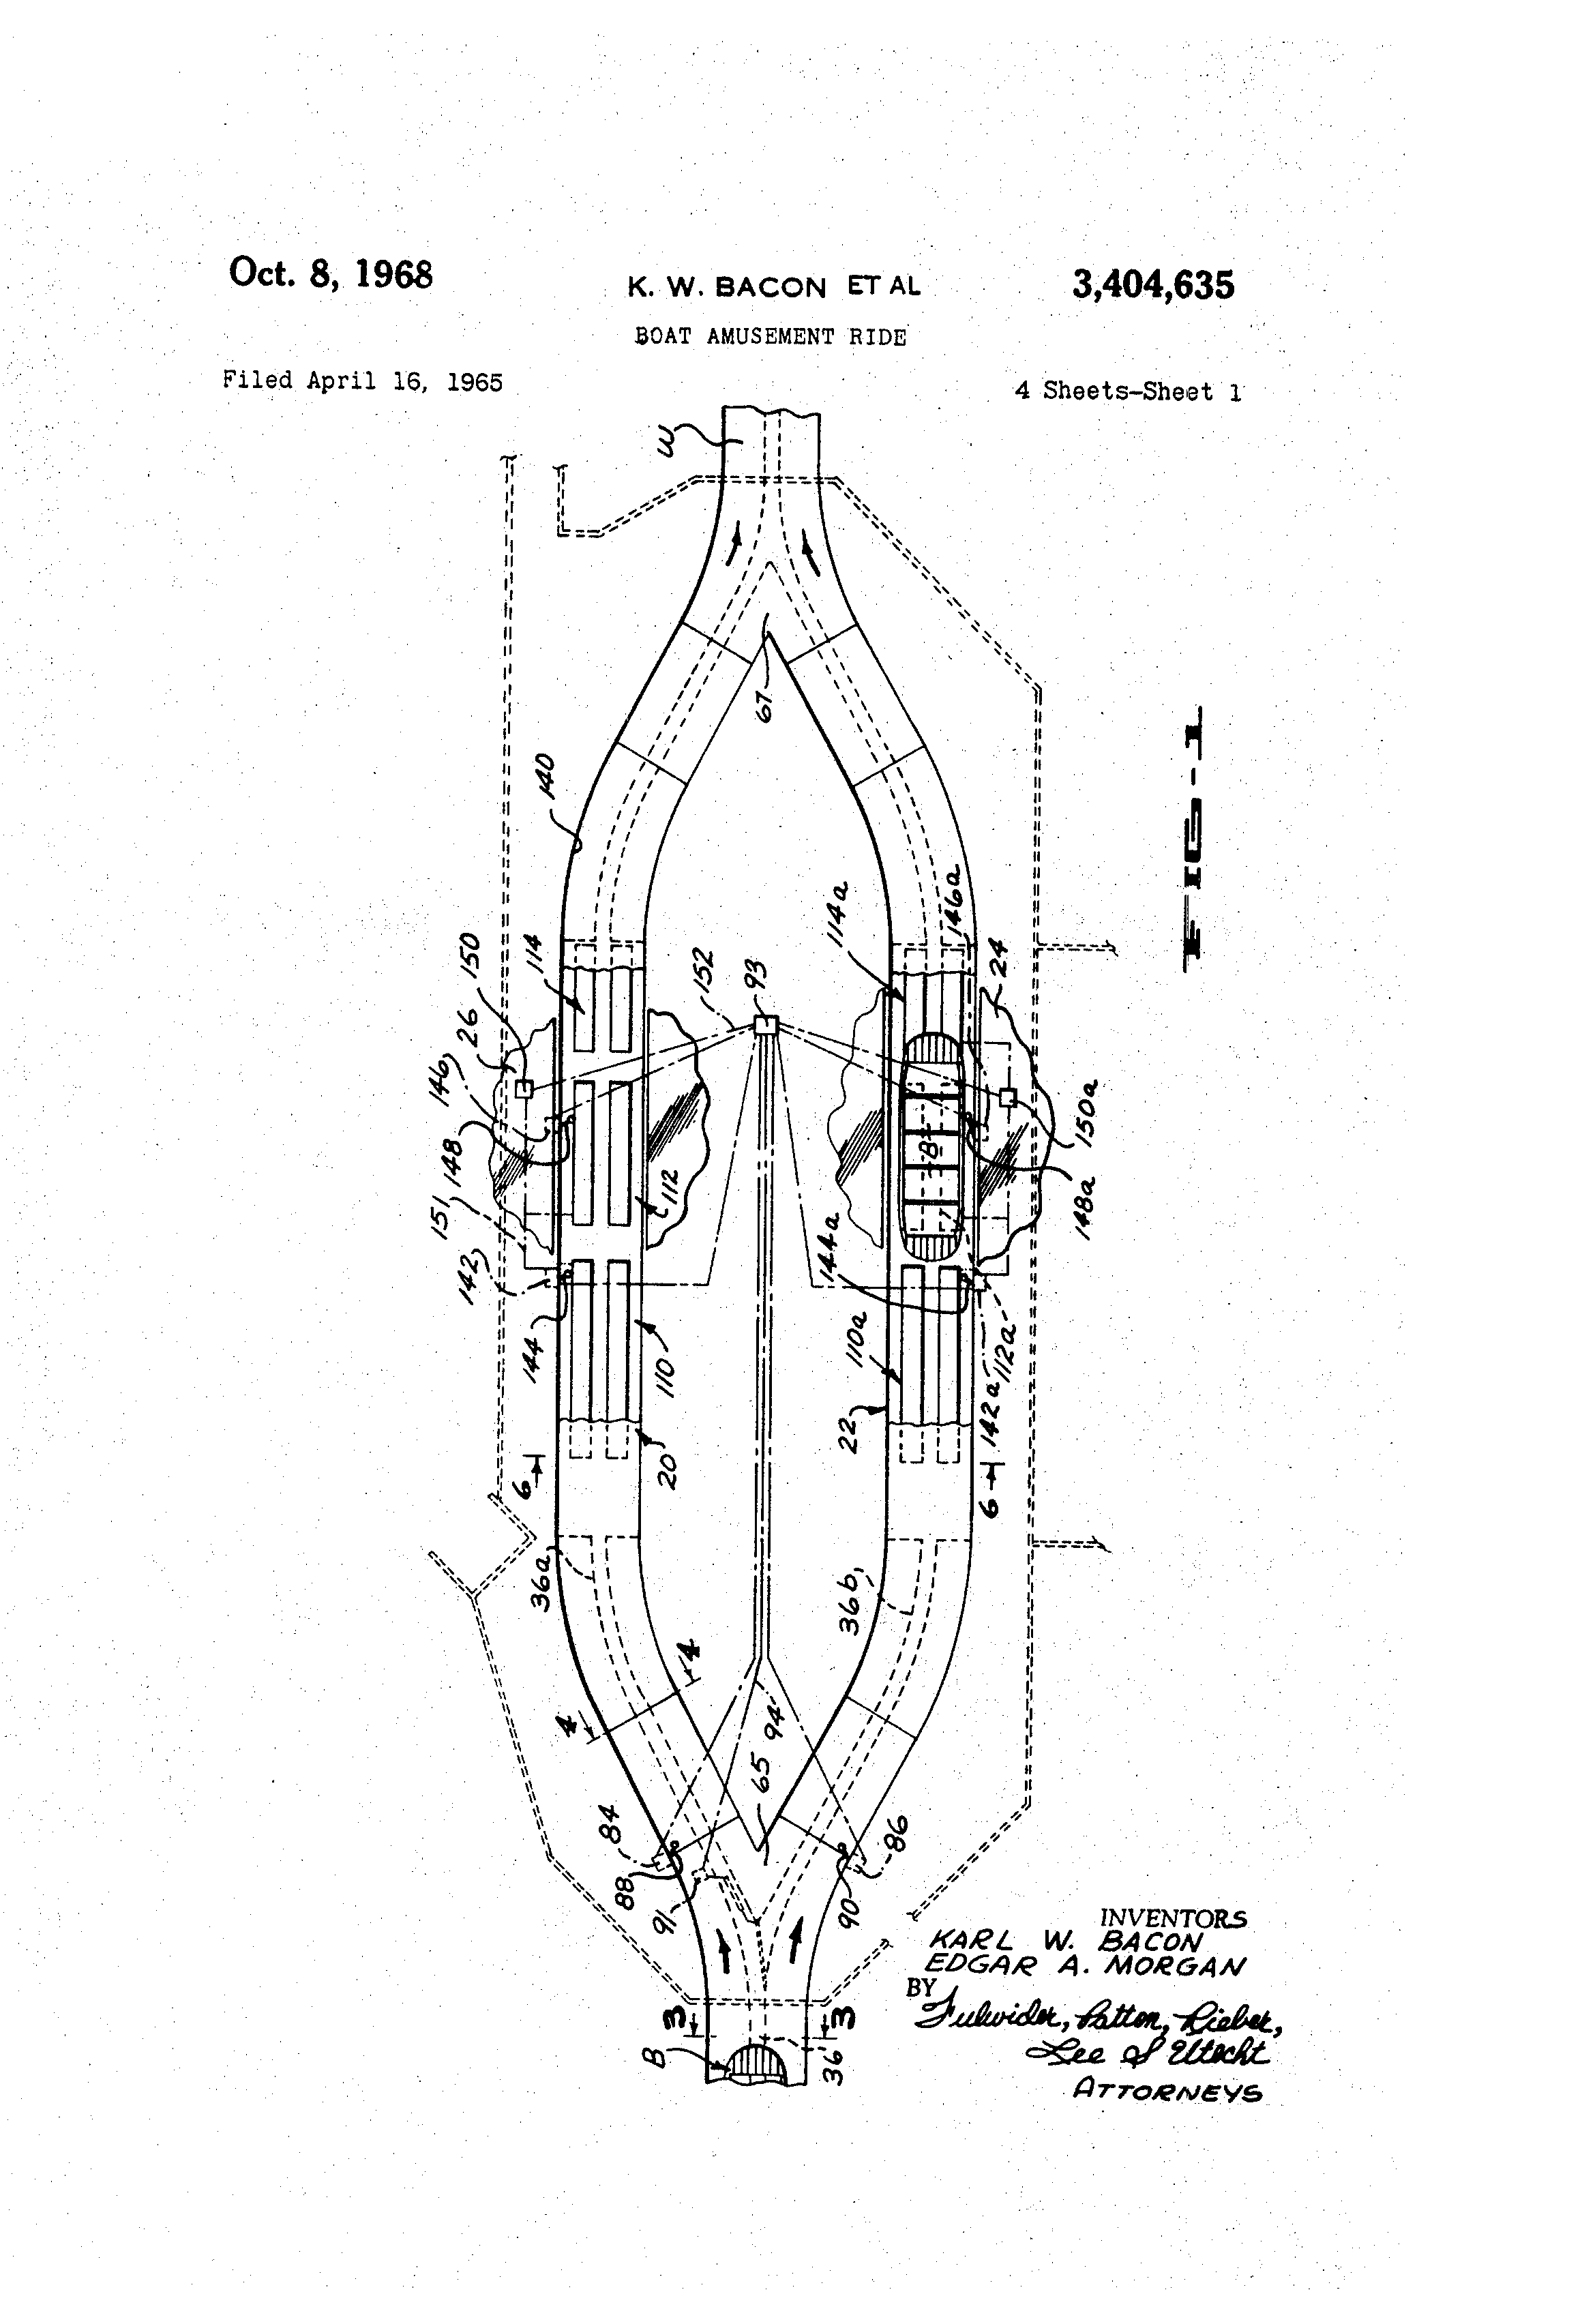 Boat Amusement Ride Patent Illustration from  Google Patents.